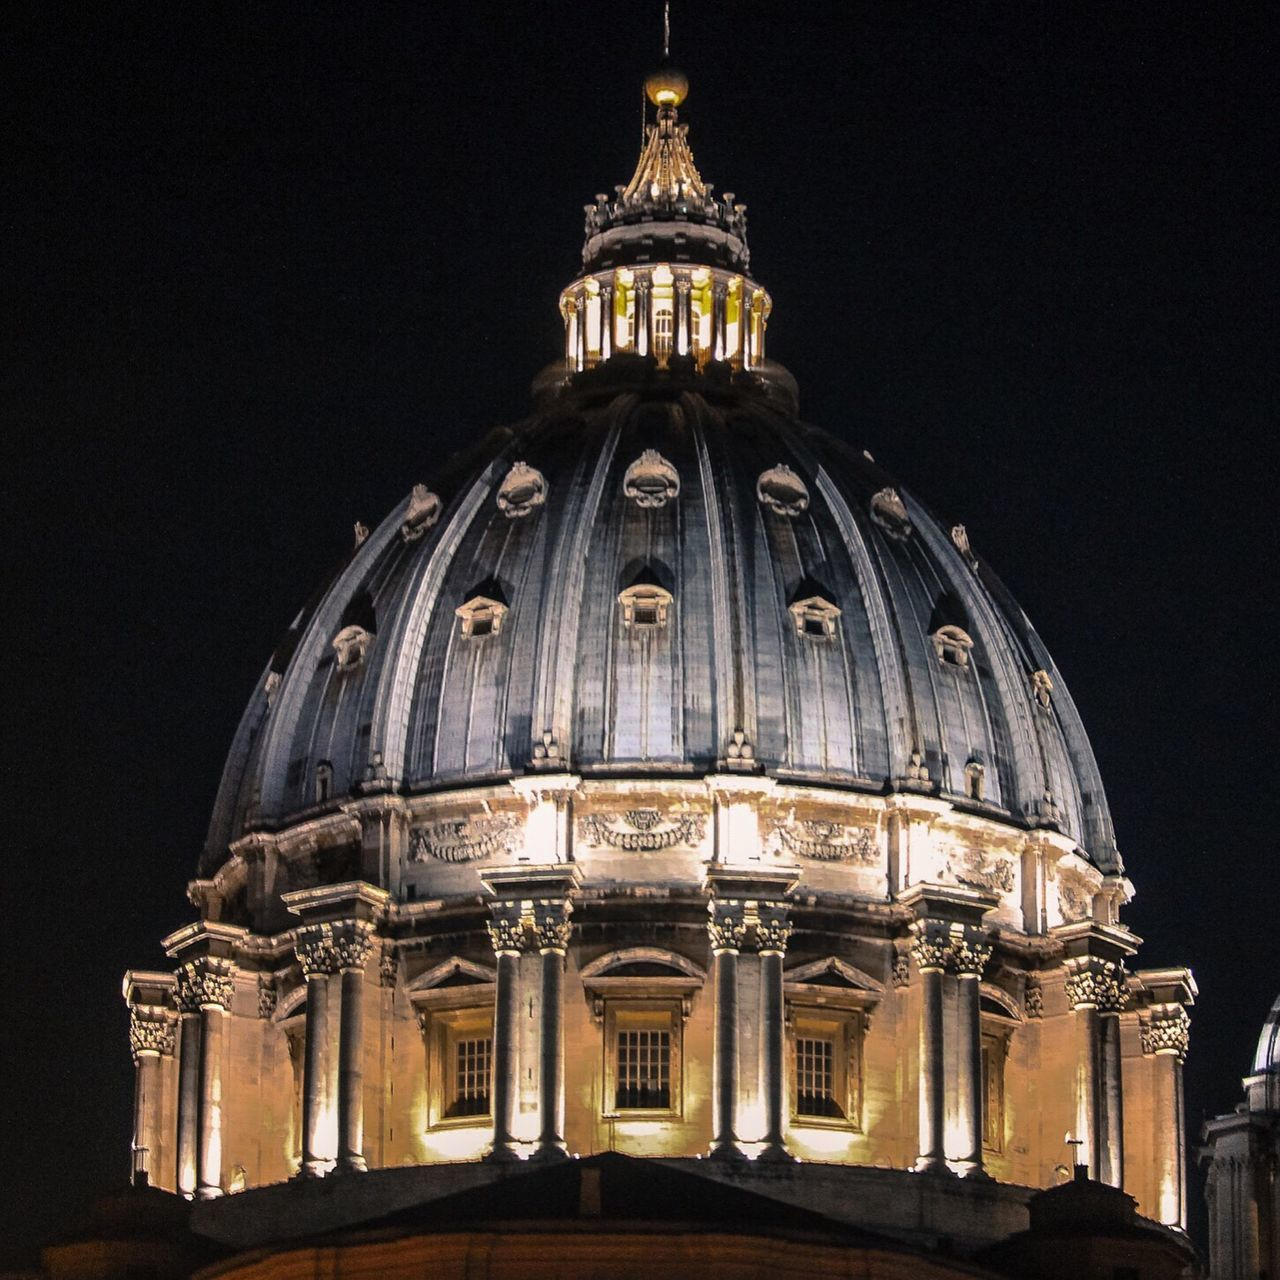 Roma Roma Citta Eterna San Pietro Rome Rome By Night La Mia Citta My City I Love My City Love Rome Battle Of The Cities